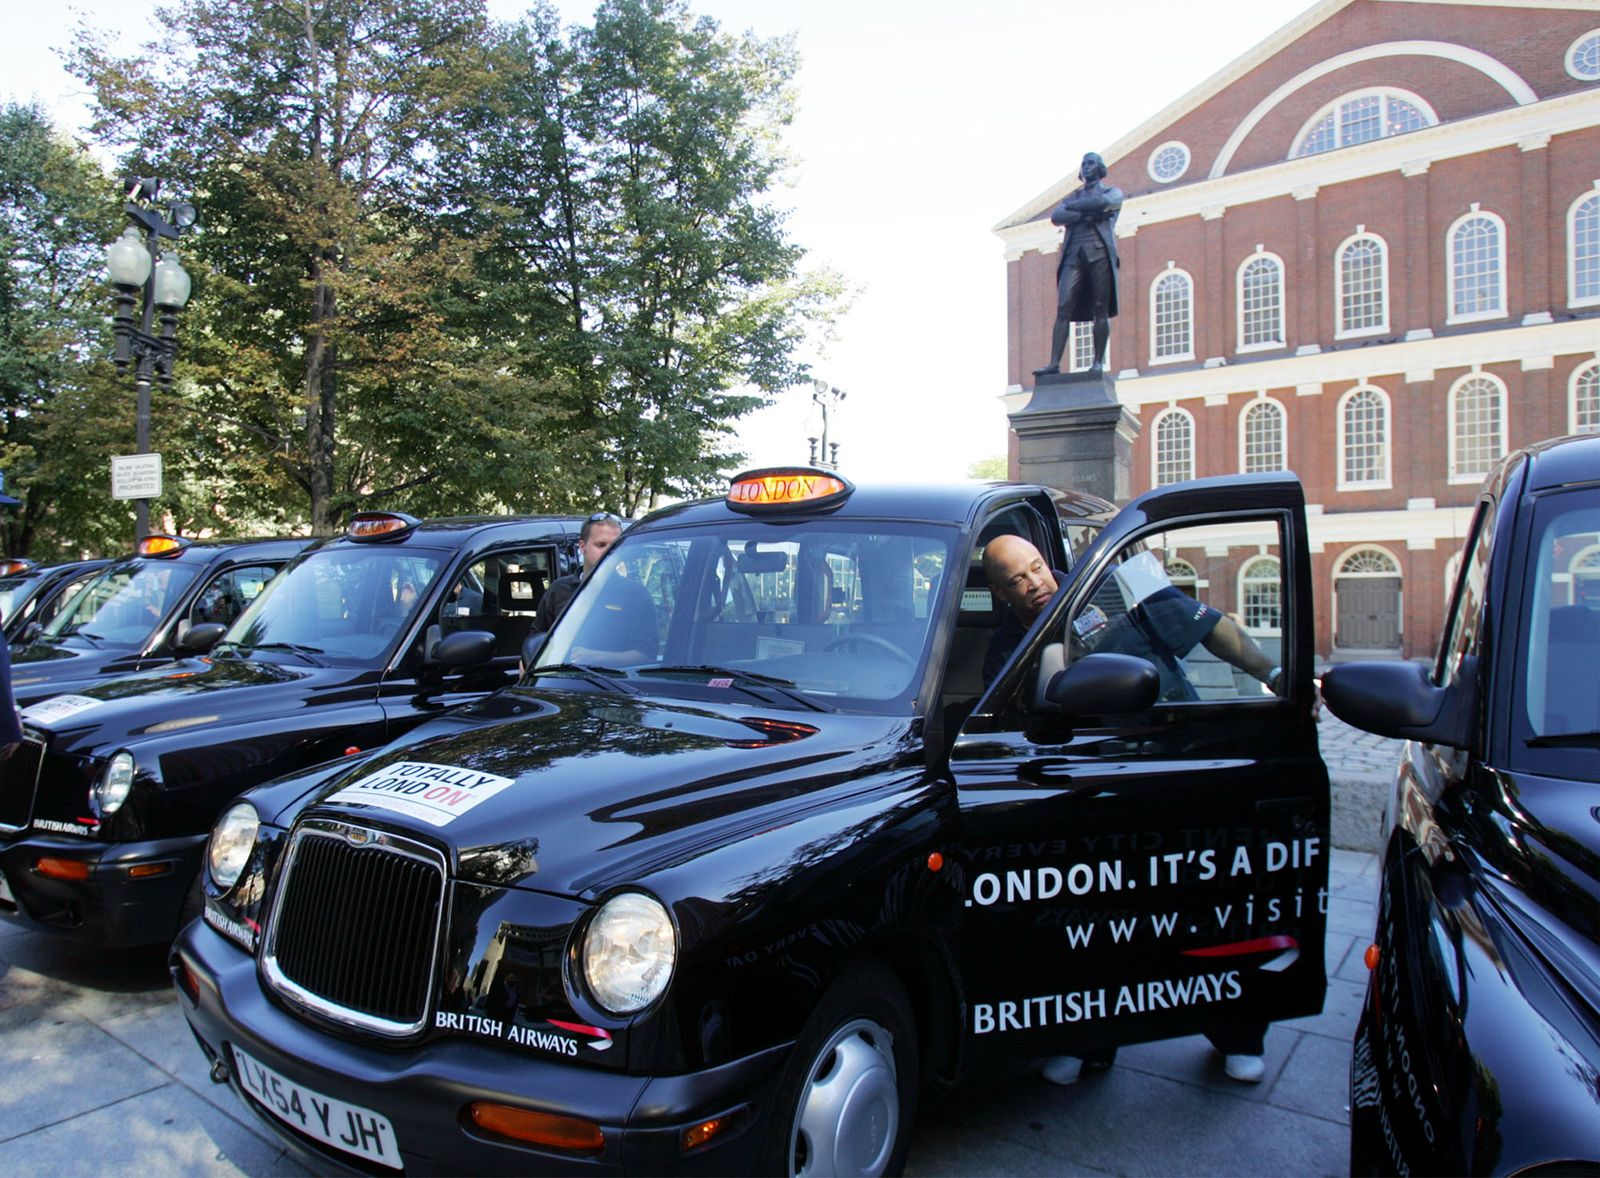 Londond / Cab / Taxi